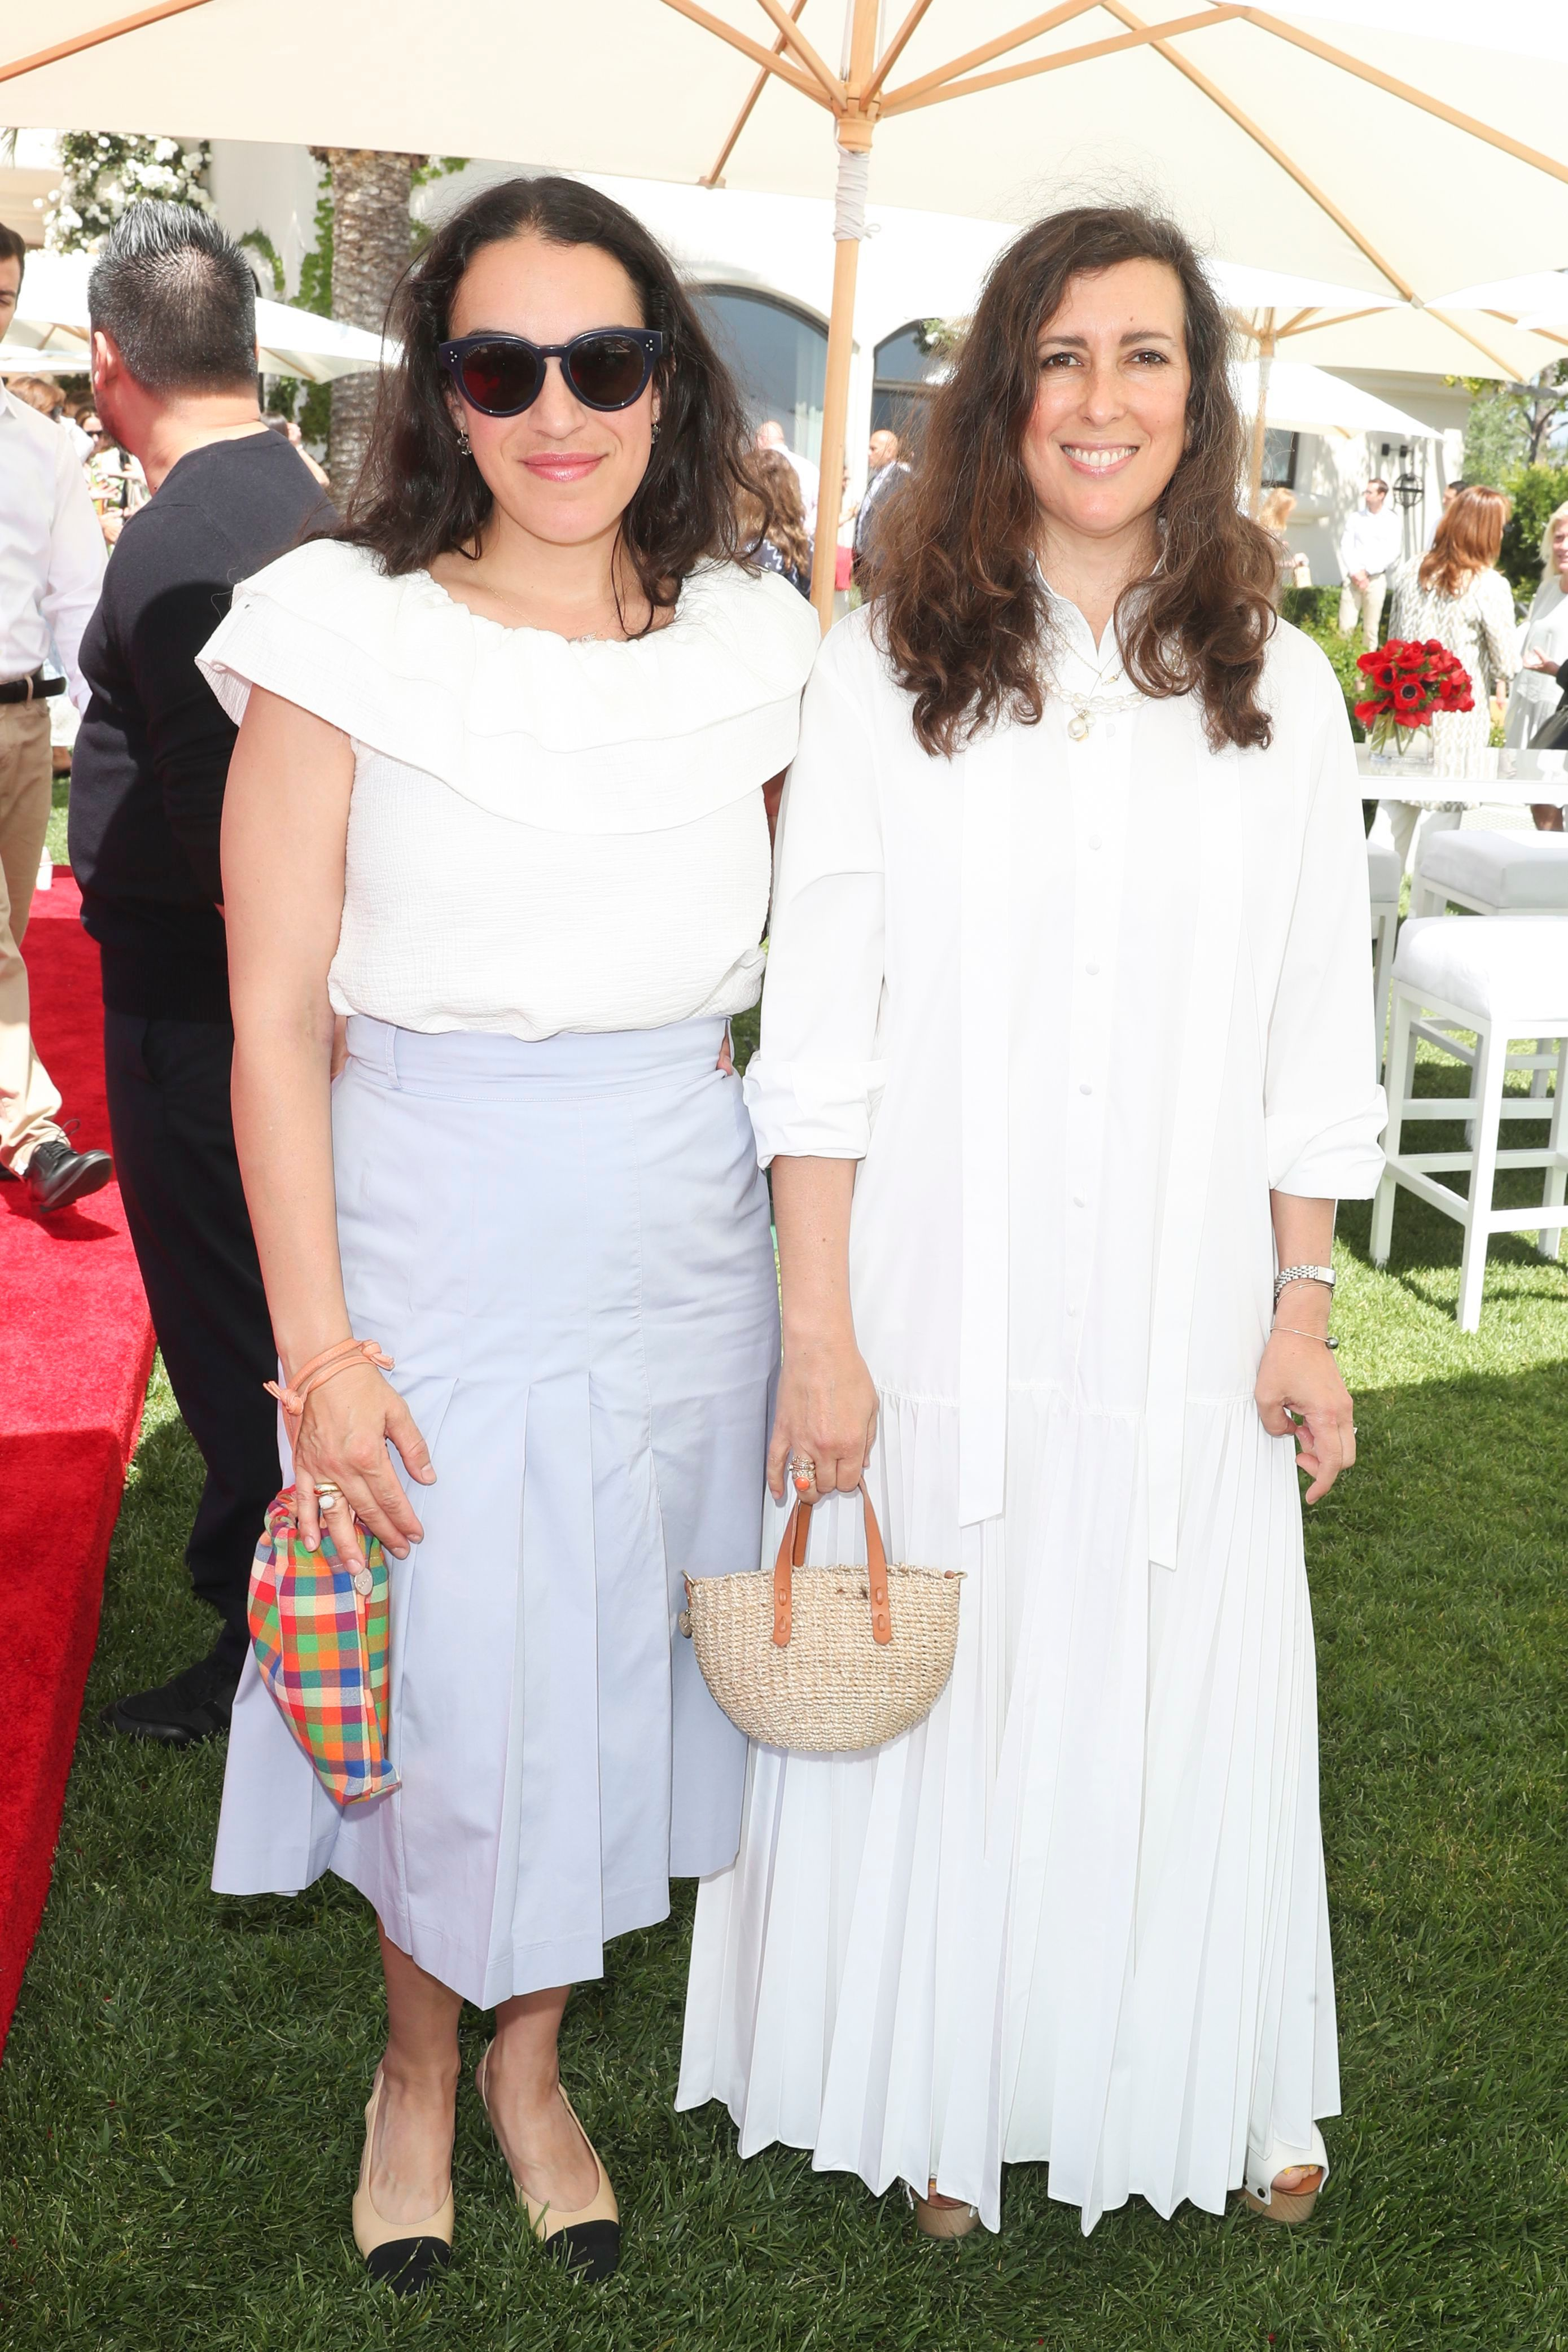 Heather Taylor and Clare VivierH.E.A.R.T. X Valentino, 14 Beverly Park, Los Angeles, USA - 24 Apr 2019